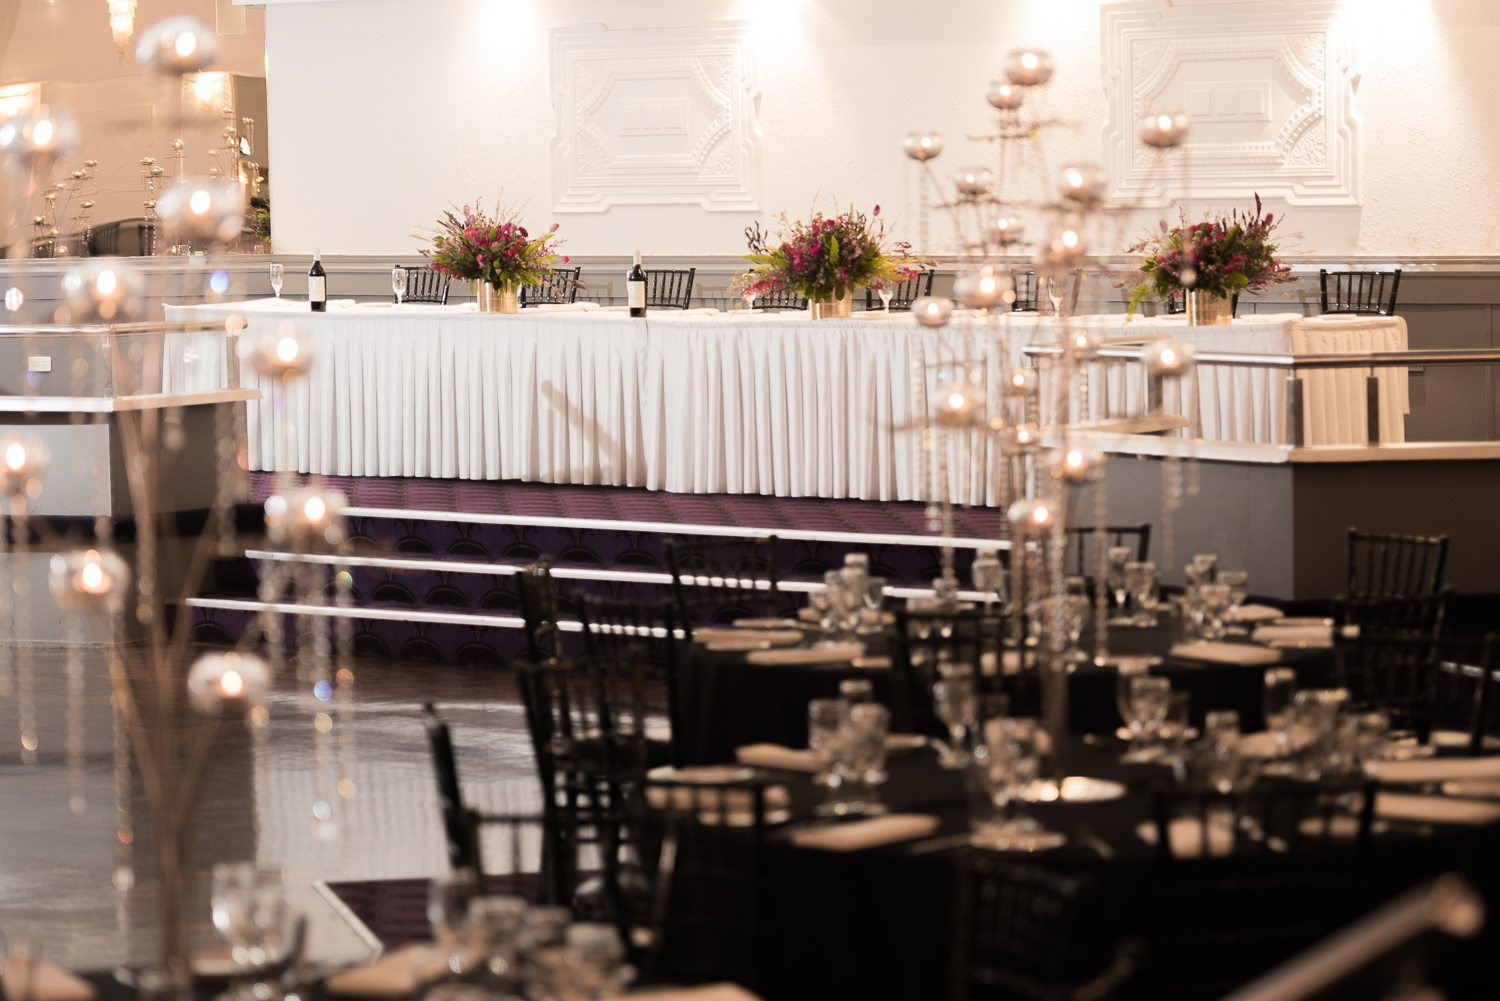 Main table with white cloth and guest tables with centrepiece